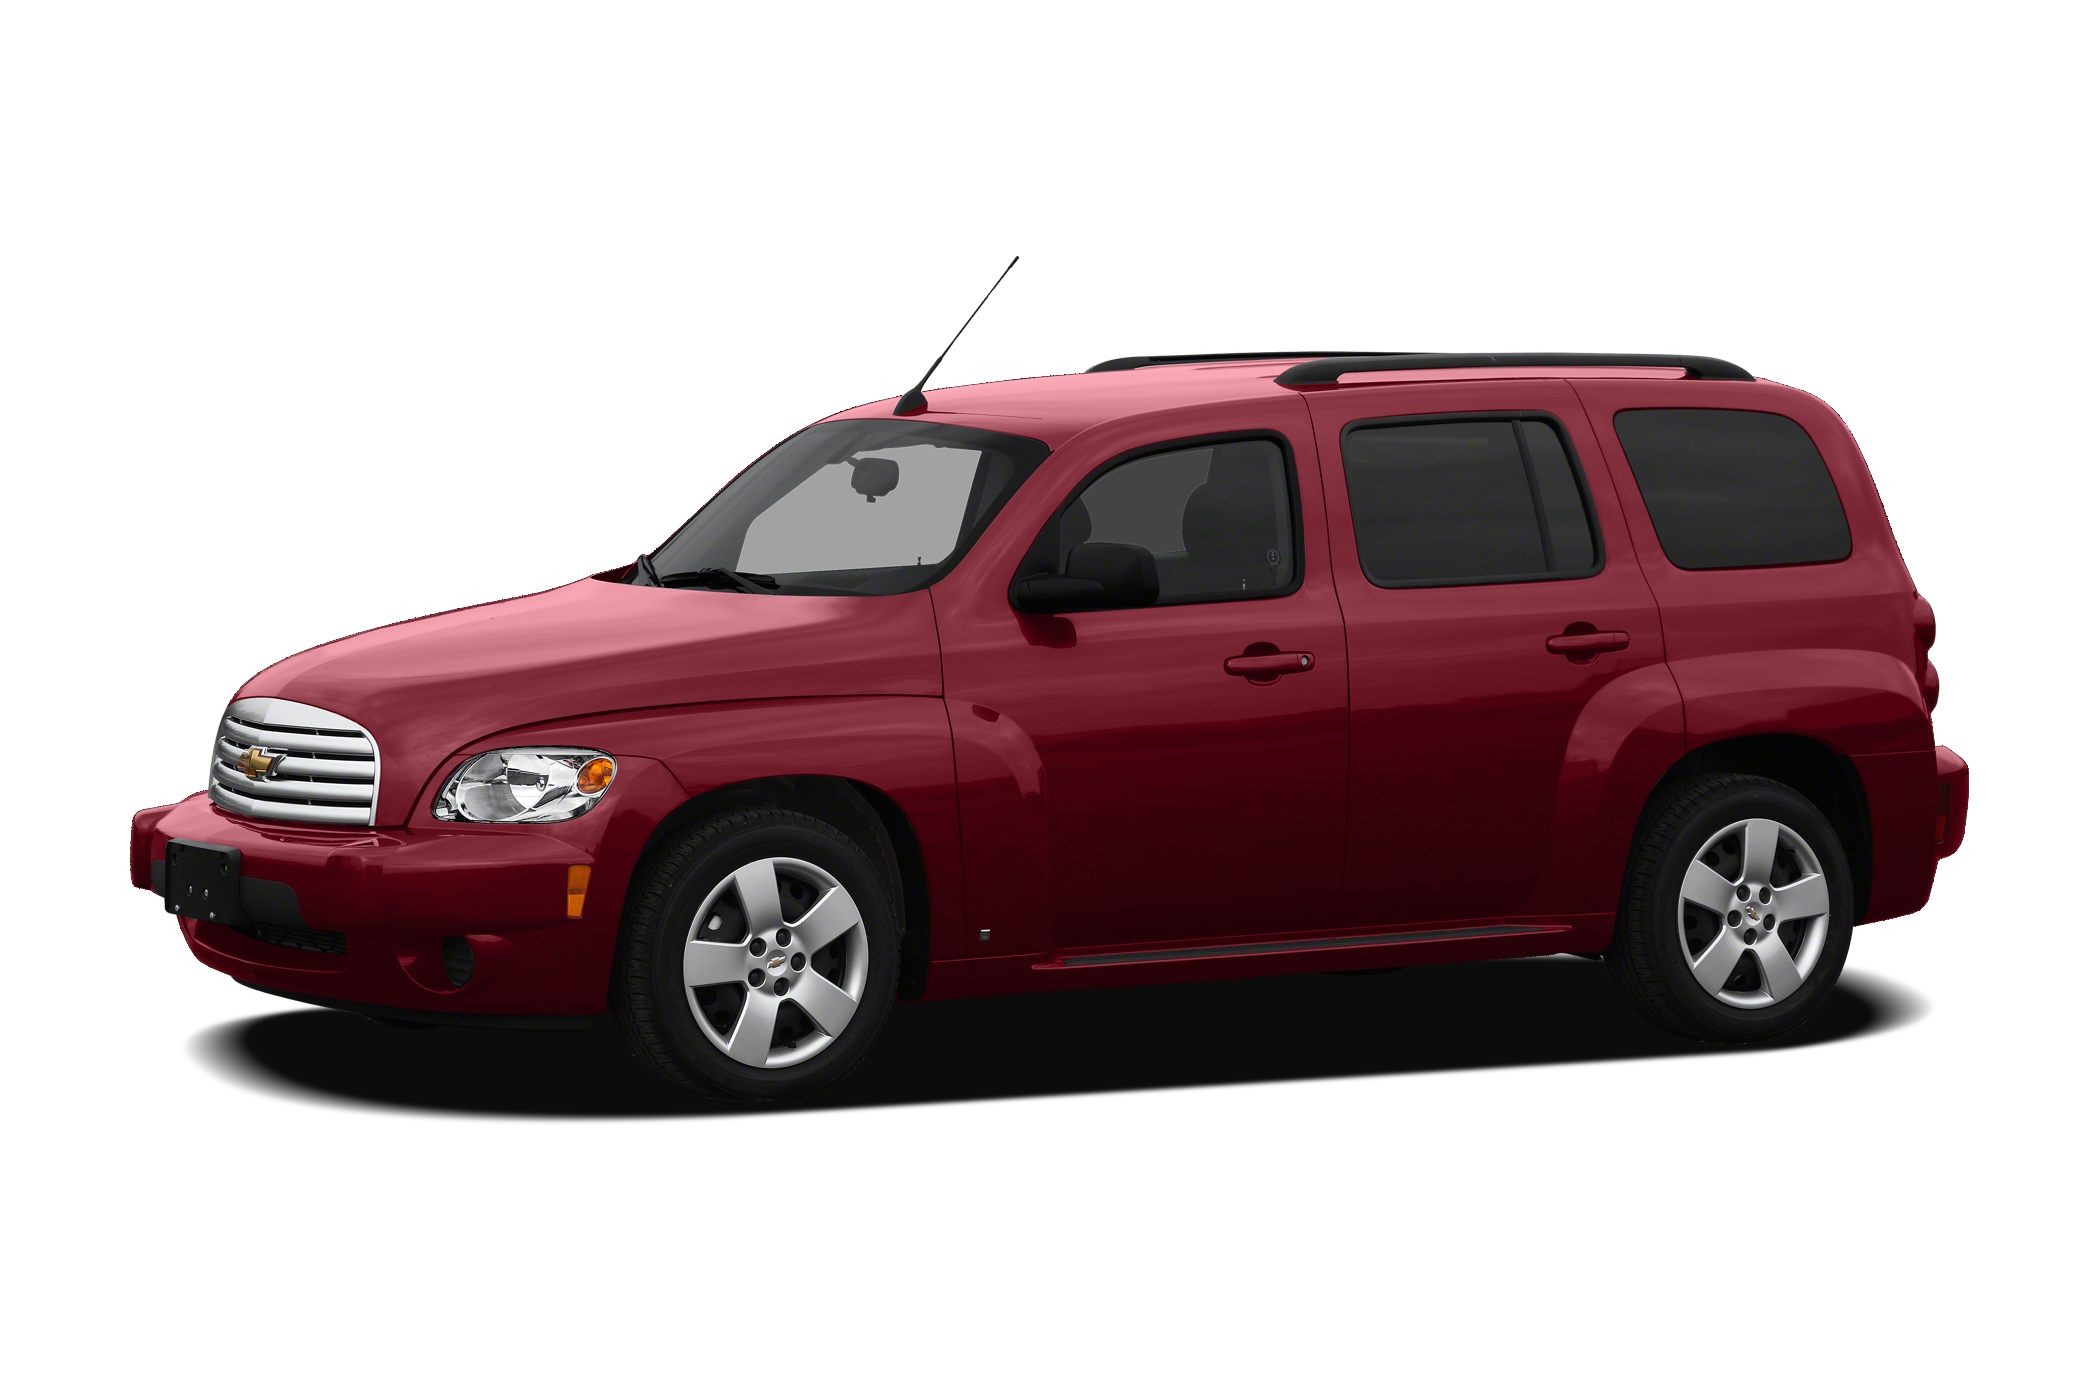 CAC10CHS201A0101 Great Description About 2011 Chevy Aveo Recalls with Captivating Images Cars Review